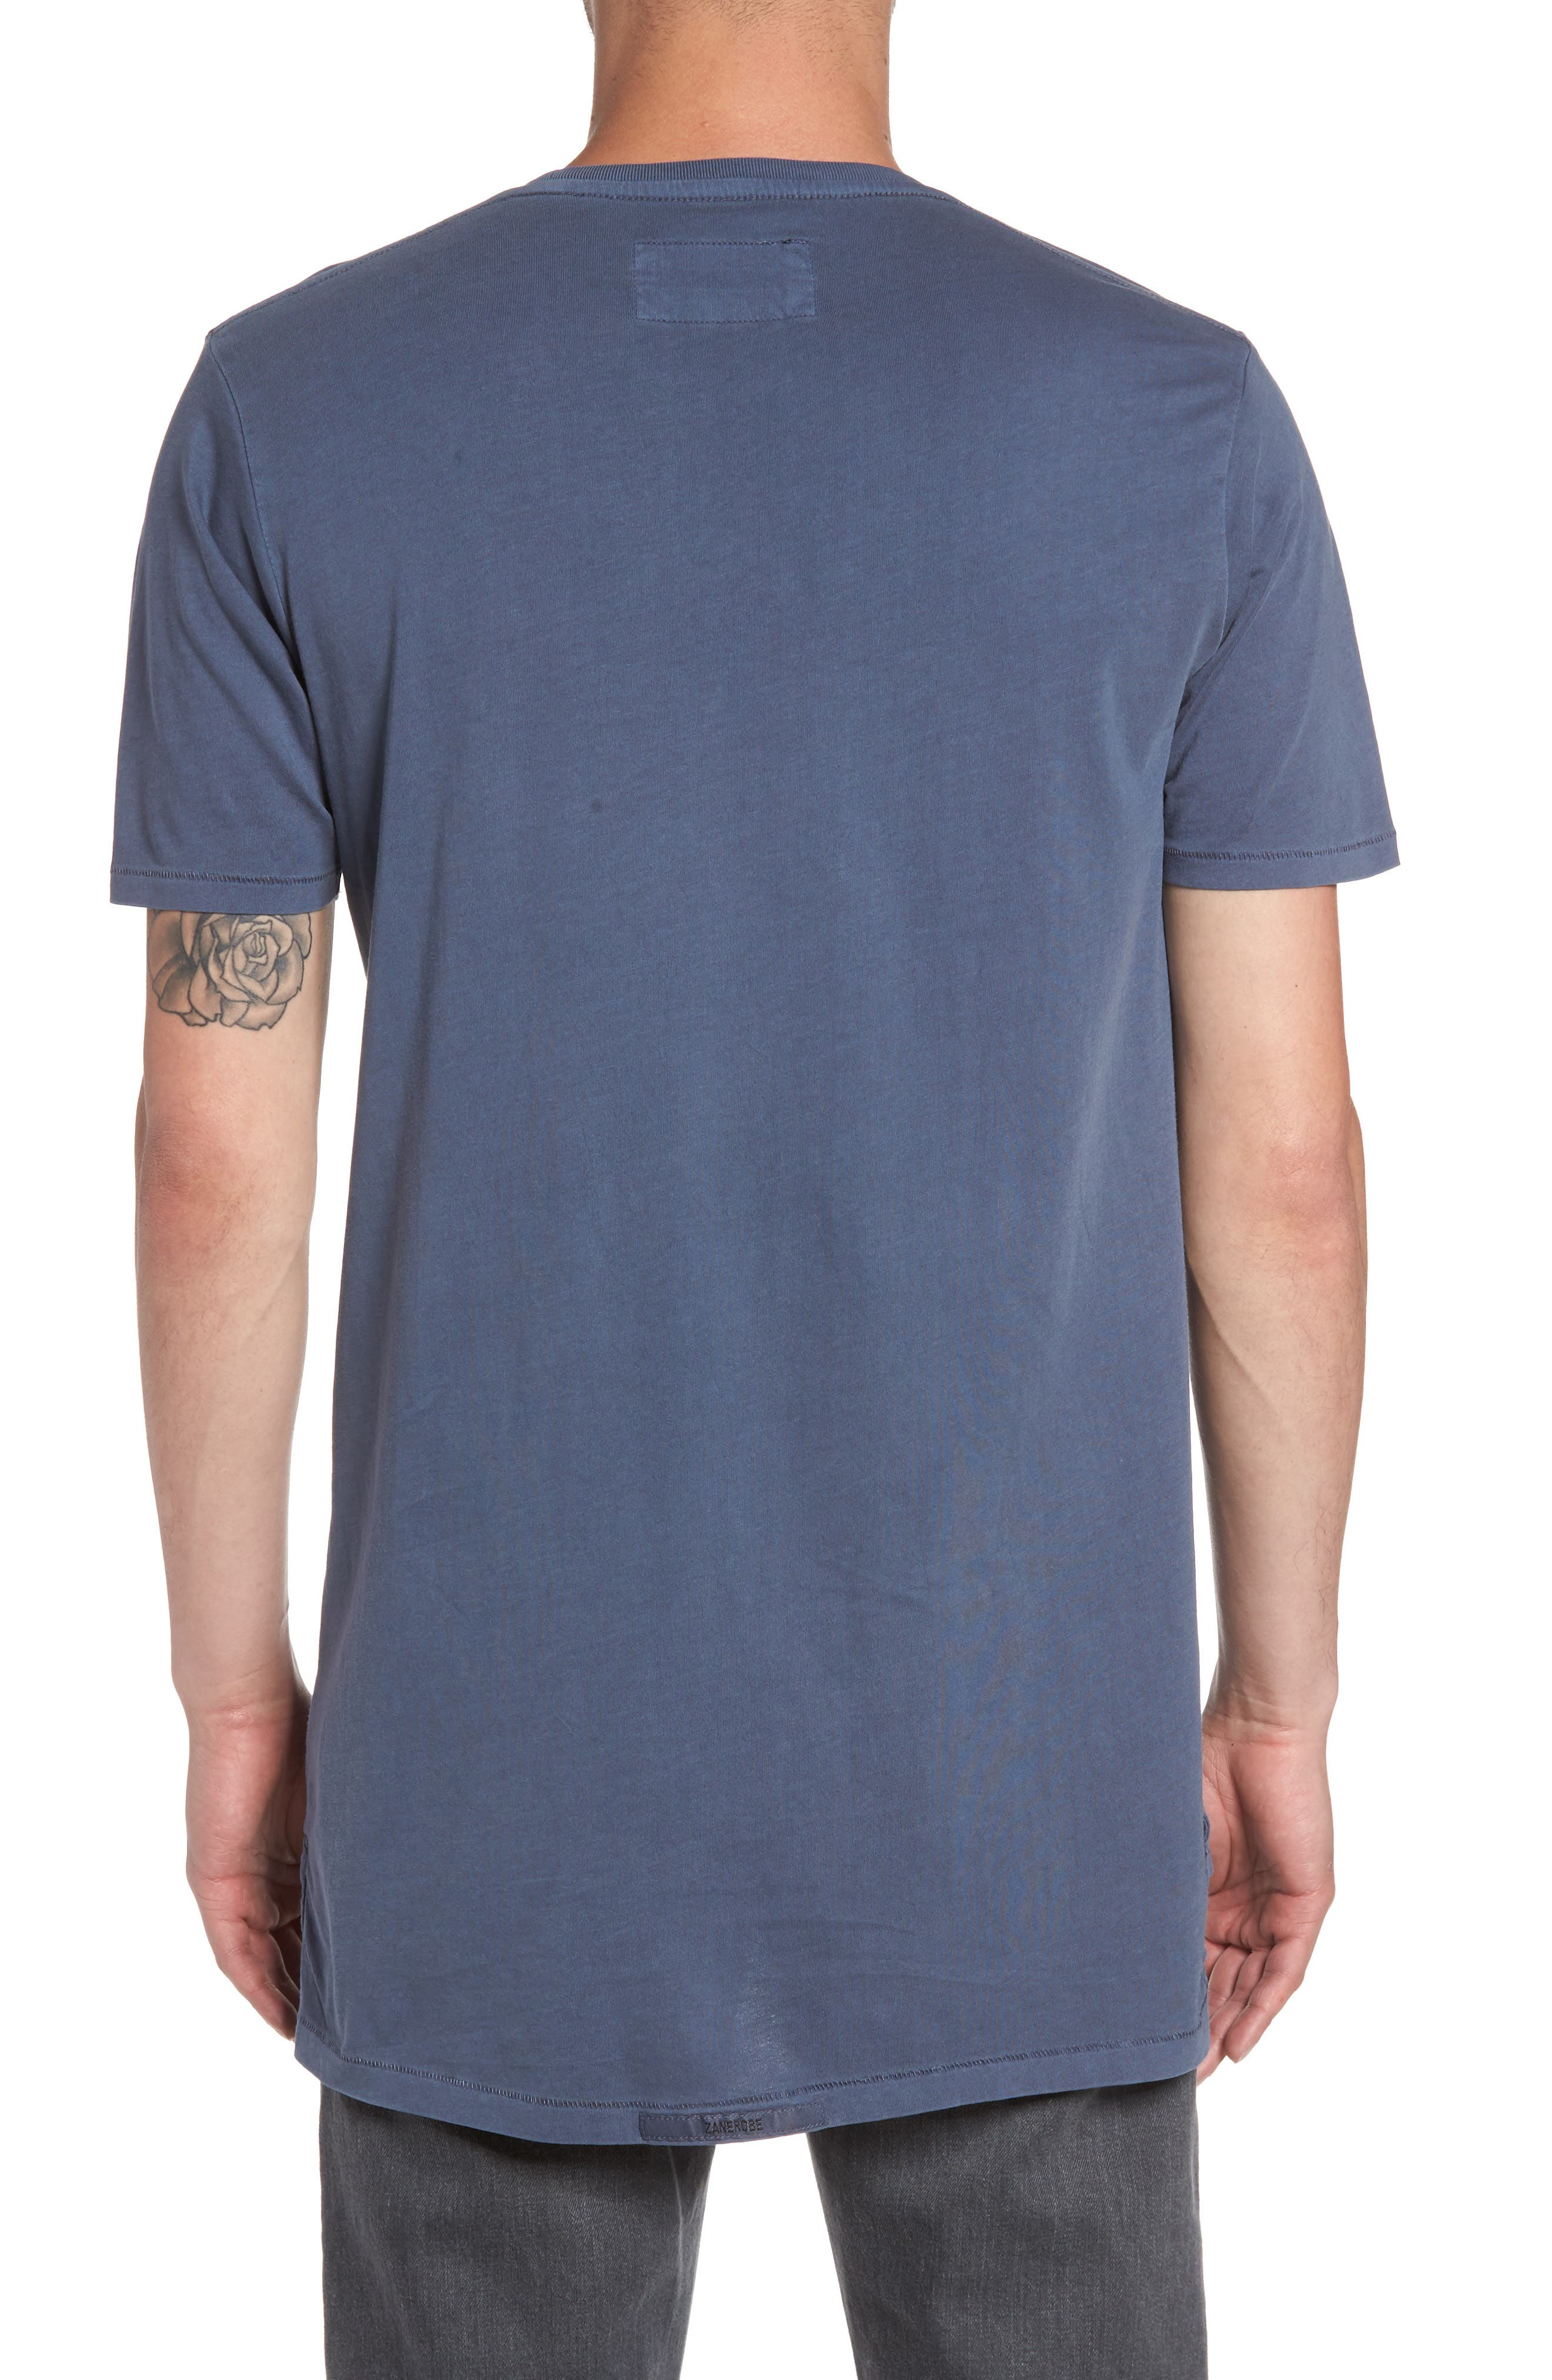 Flintlock Stripe T-Shirt,                             Alternate thumbnail 2, color,                             PIGMENT BLUE GREY